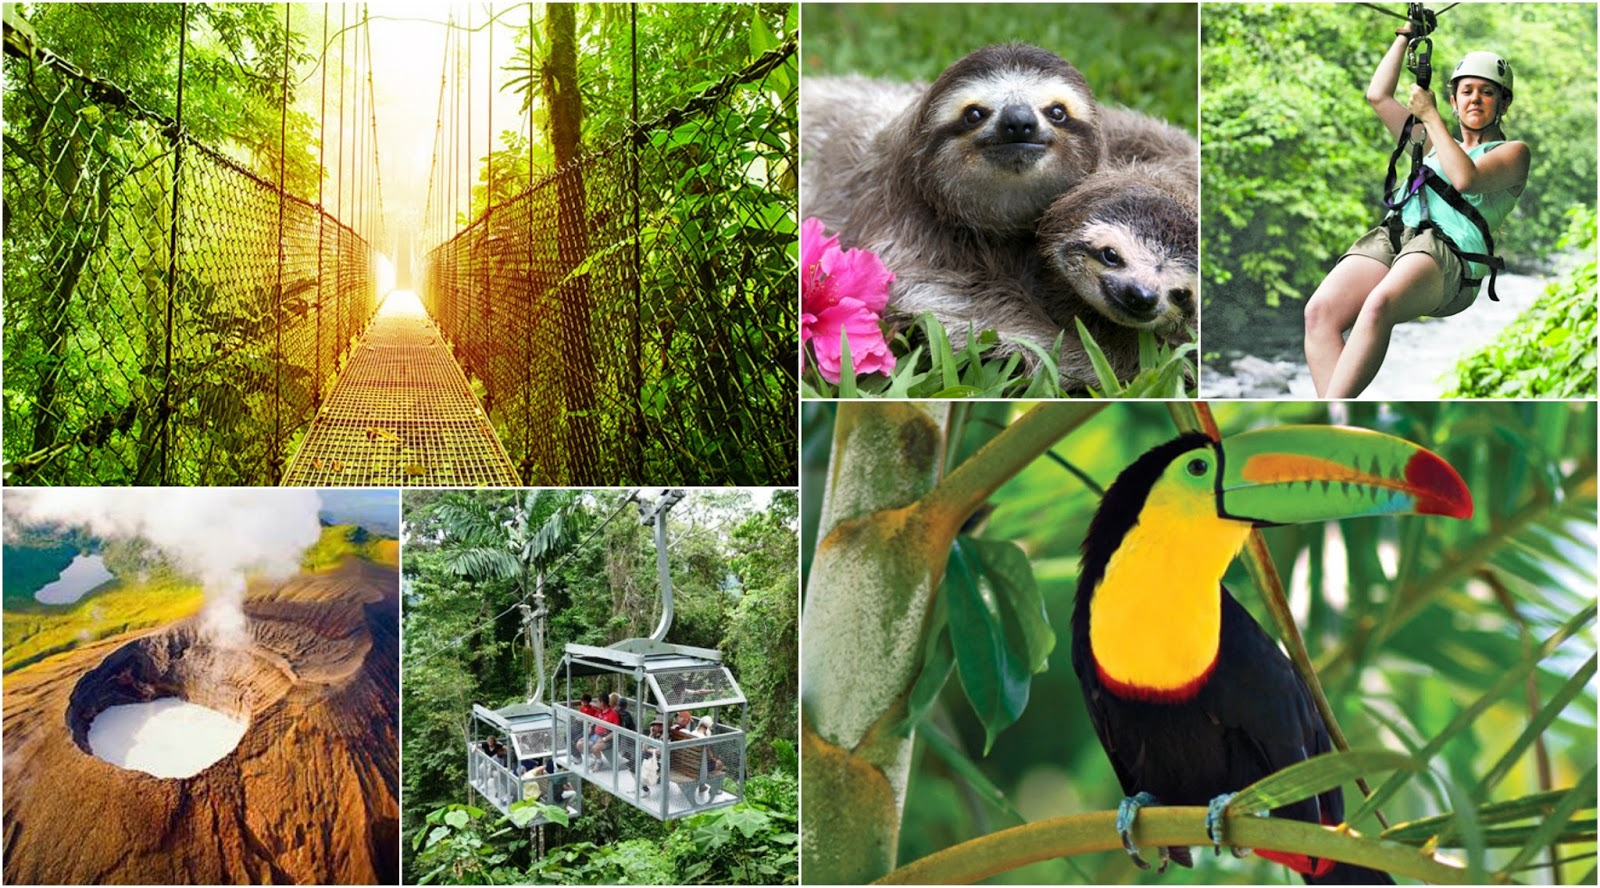 ecotourism in the galapagos islands costa rica San jose, costa rica is 834 miles from galapagos islands panama city, panama - tocumen international airport is the most popular connection for one stop flights between san jose, costa rica and galapagos islands.